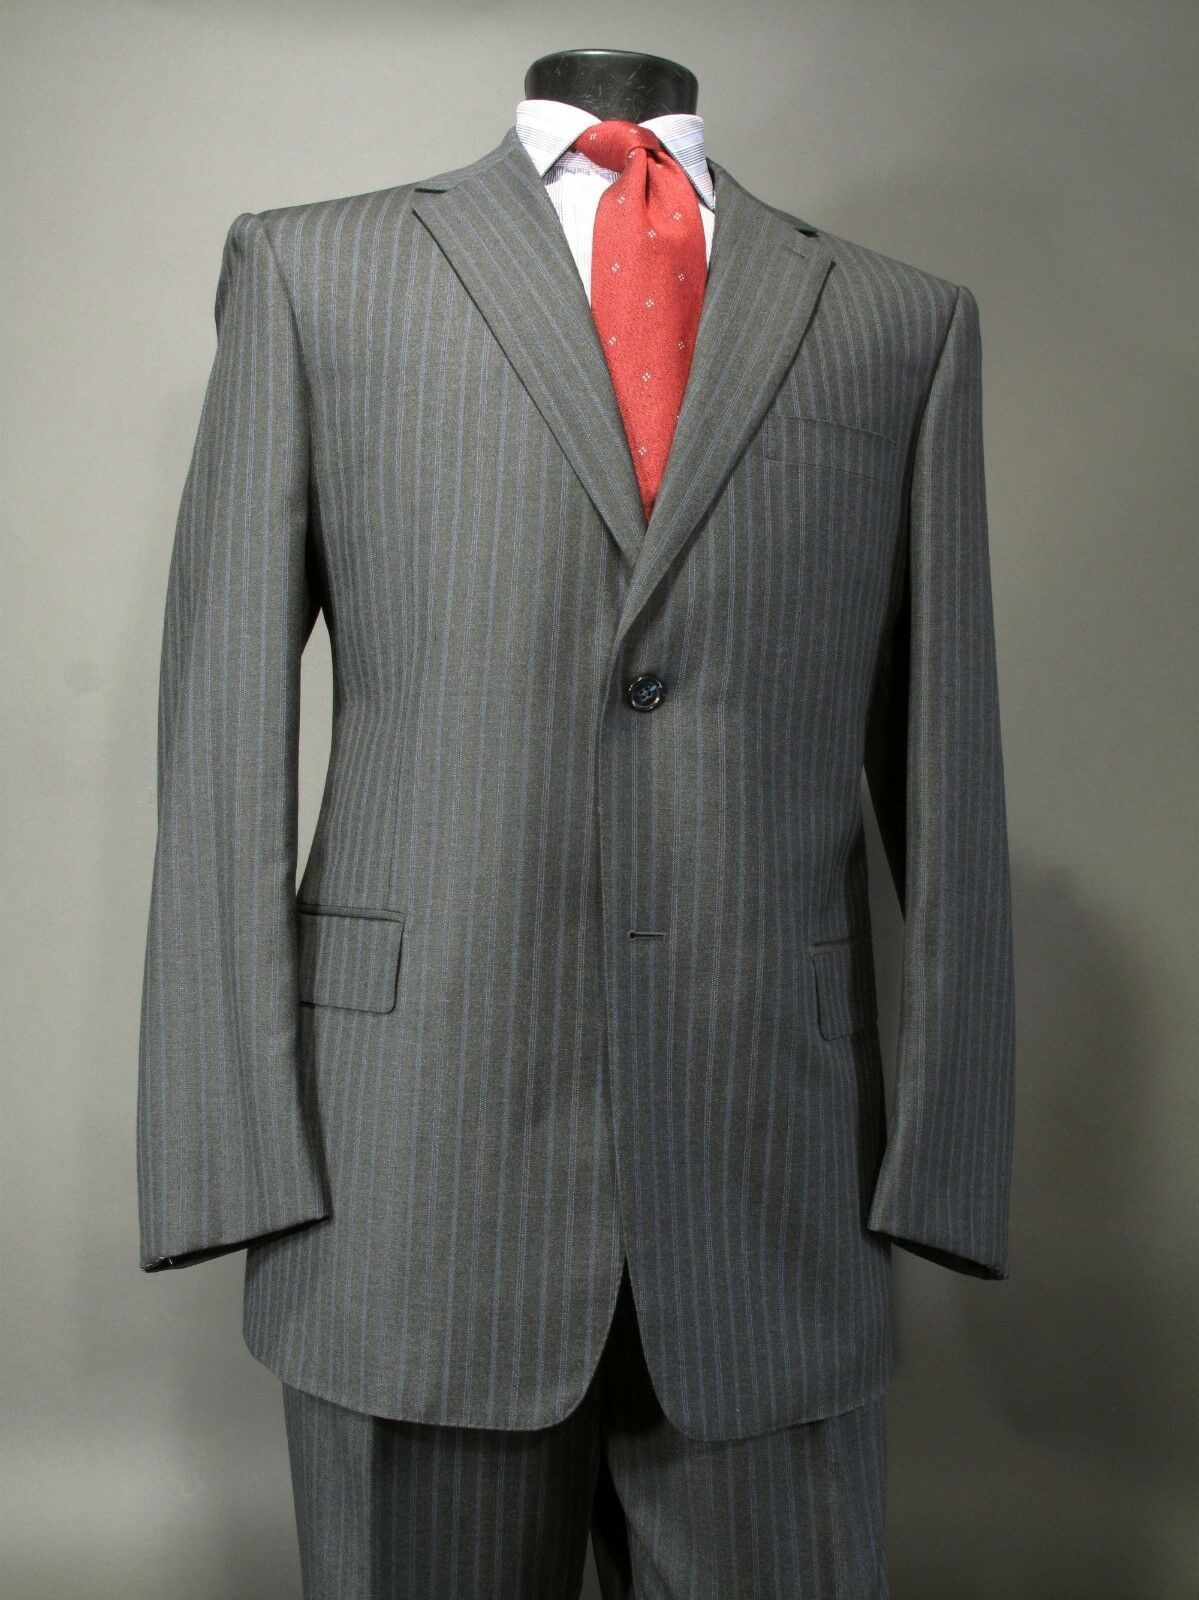 New JHANE BARNES Suit 44R L, Hand TailoROT, Full Canvas 2 Btn, Side Vents